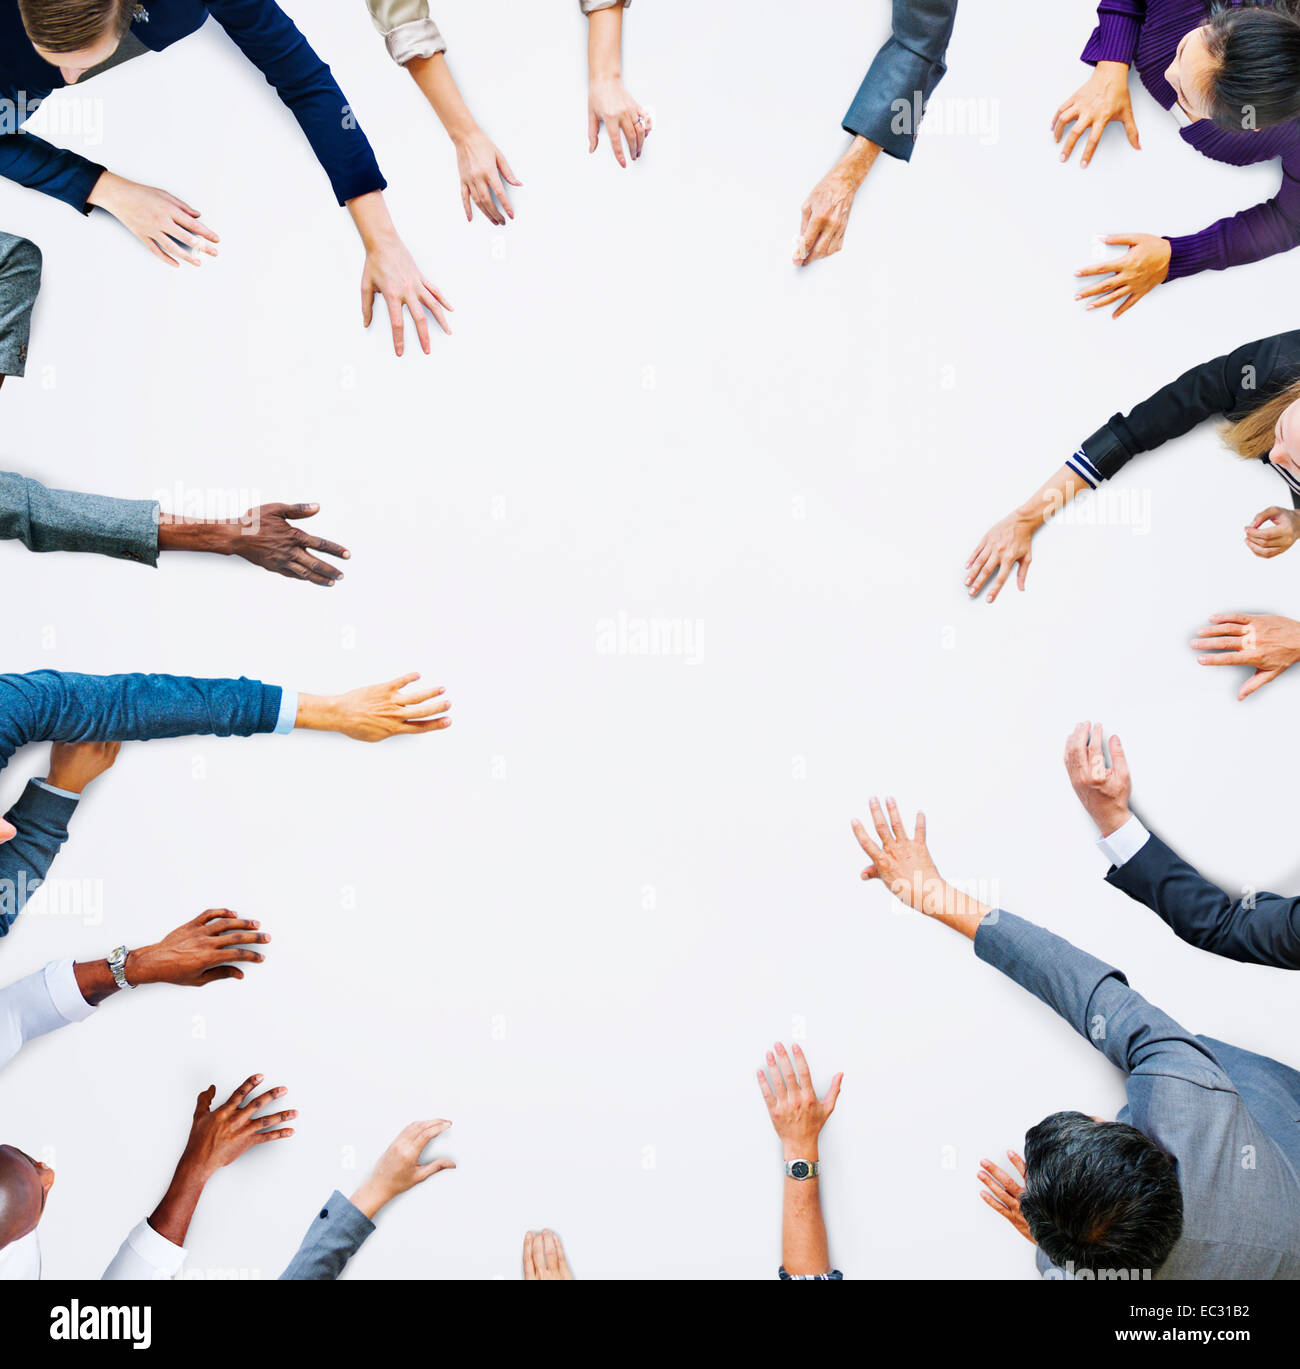 Human Hands of Business People and Copy Space - Stock Image